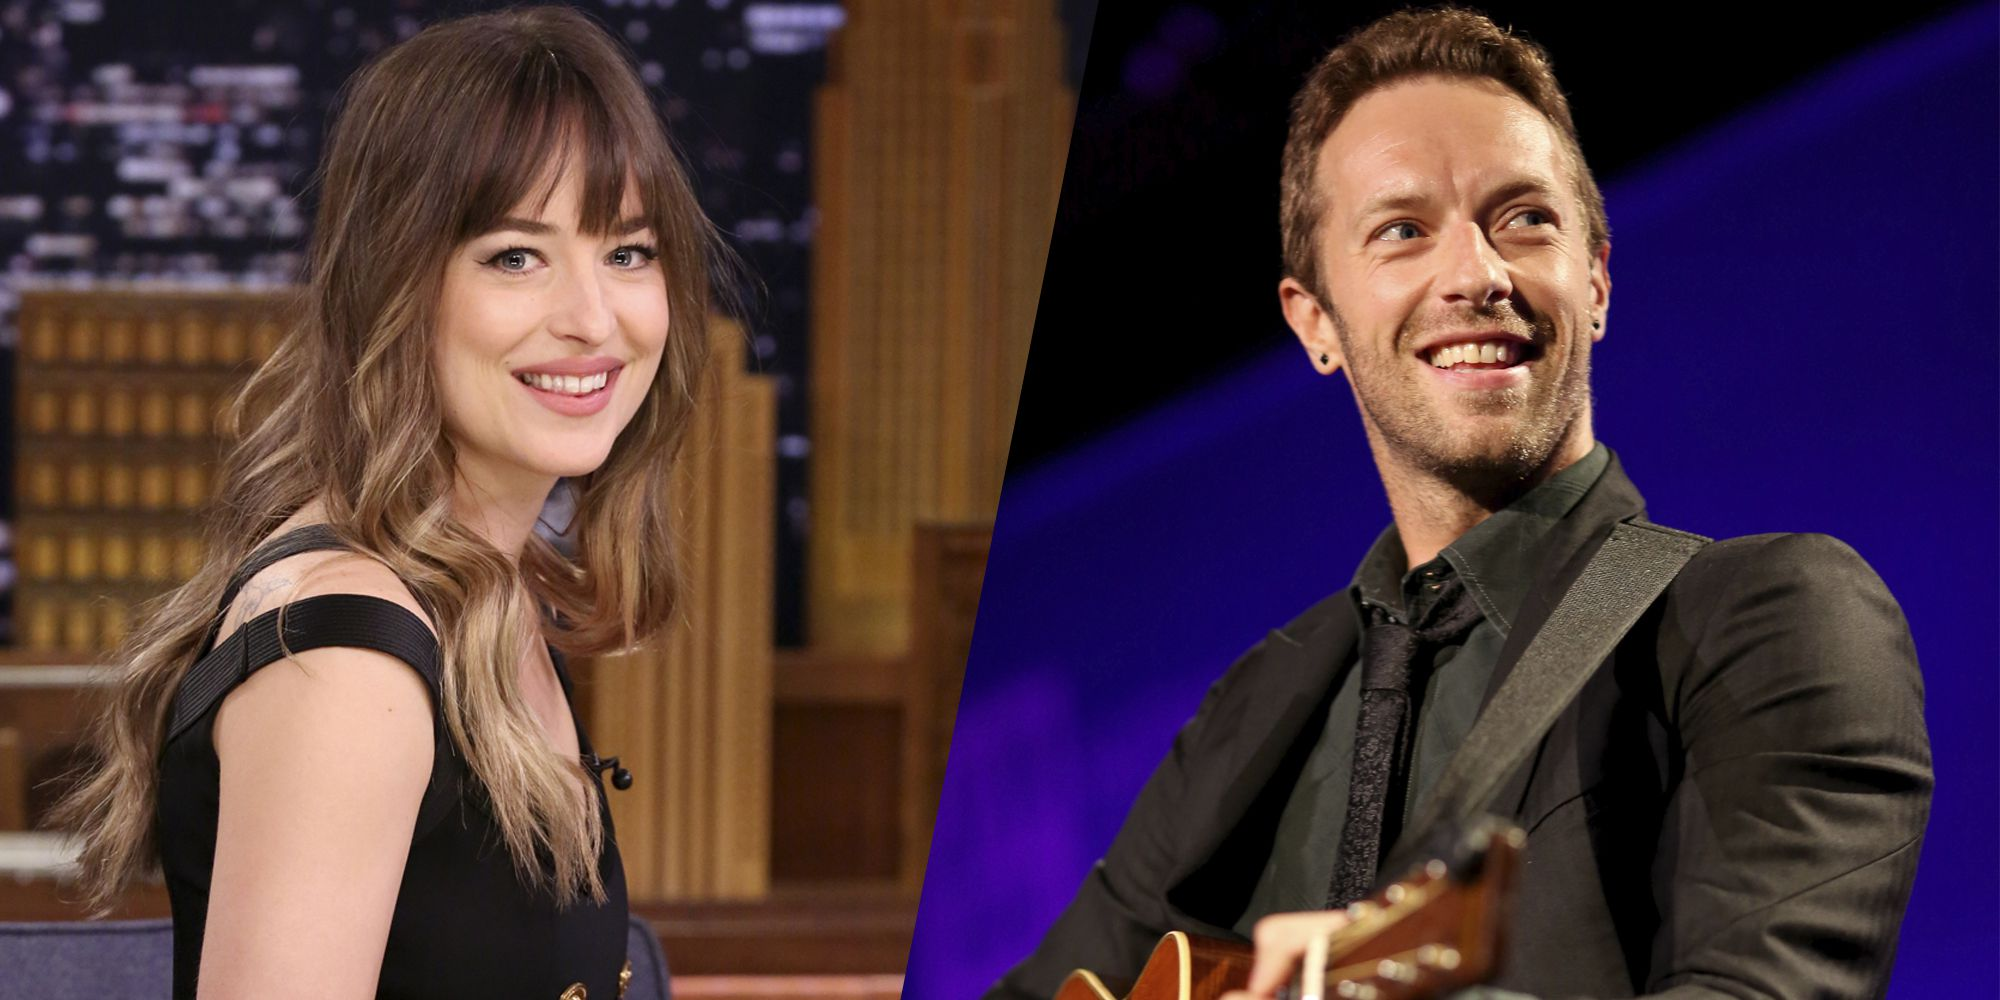 Chris Martin and girlfriend Dakota Johnson split after two years of dating